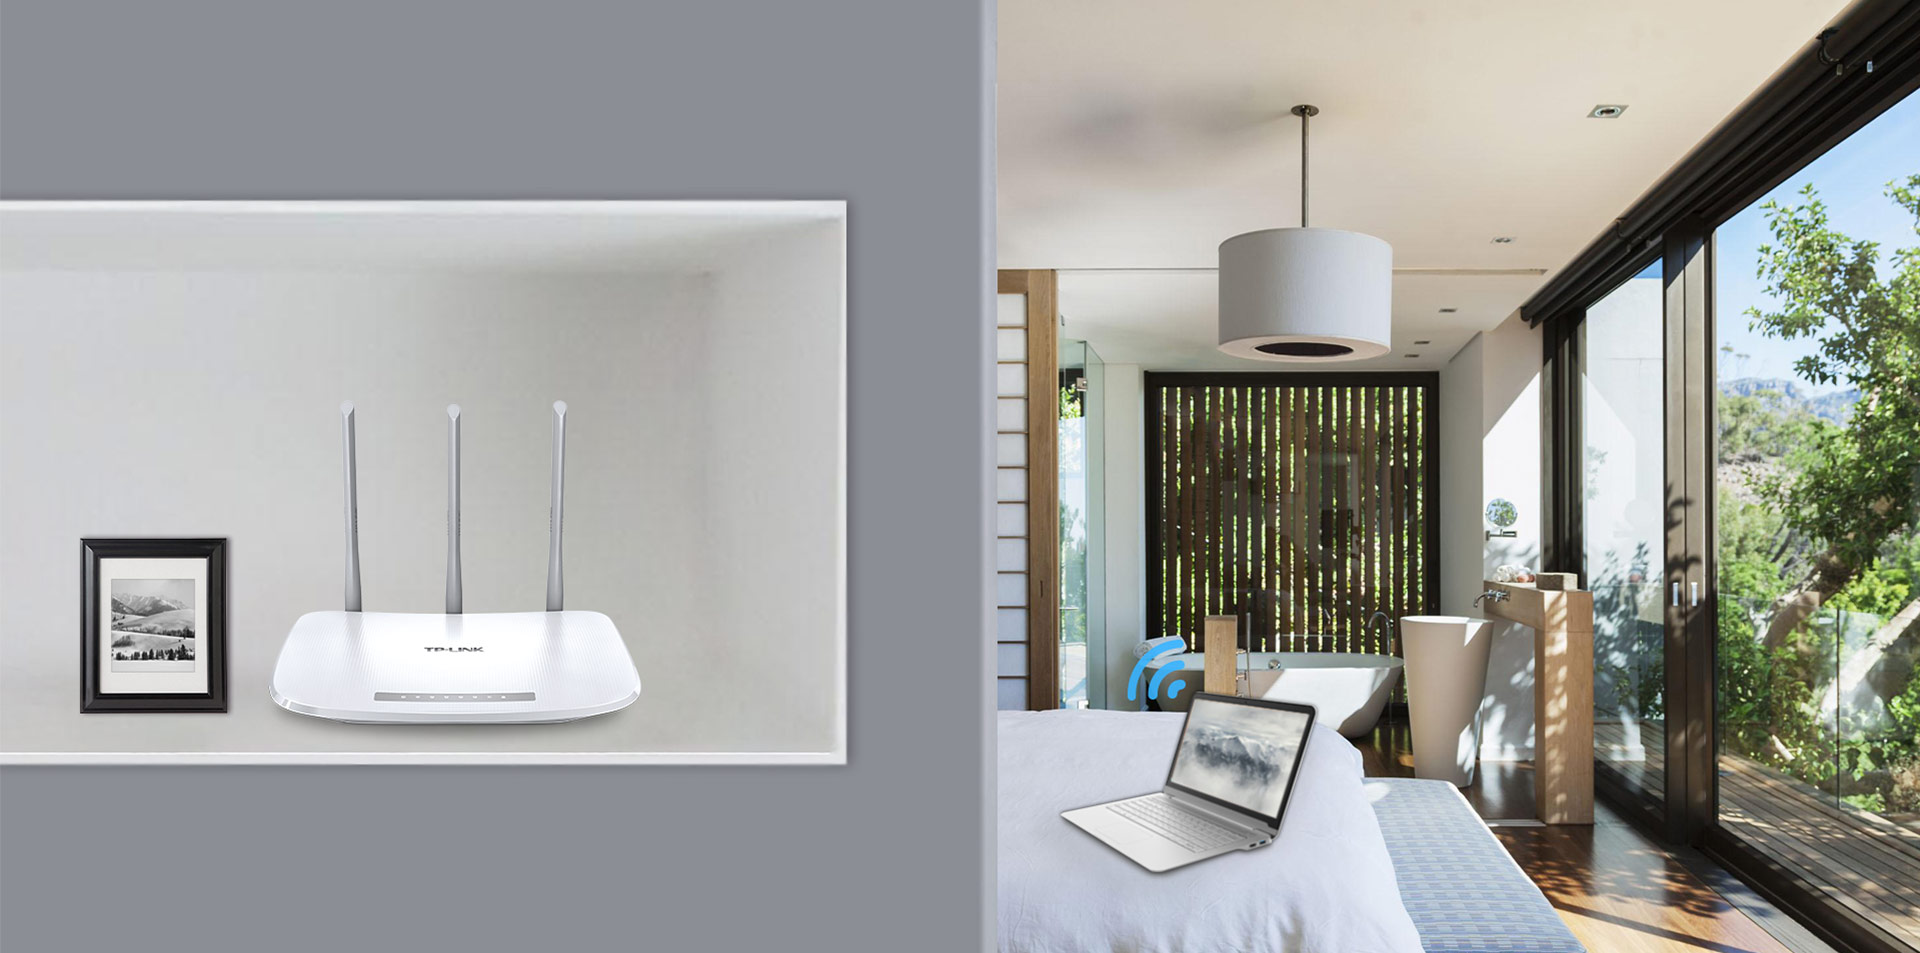 Tl Wr845n 300mbps Wireless N Router Tp Link India Tplink Wr840n Wr 840 Three 5dbi High Gain Antennas Perfect For Small To Medium House A Better Coverage Lets You Never Lost Connections And Enjoy More Stable Connection